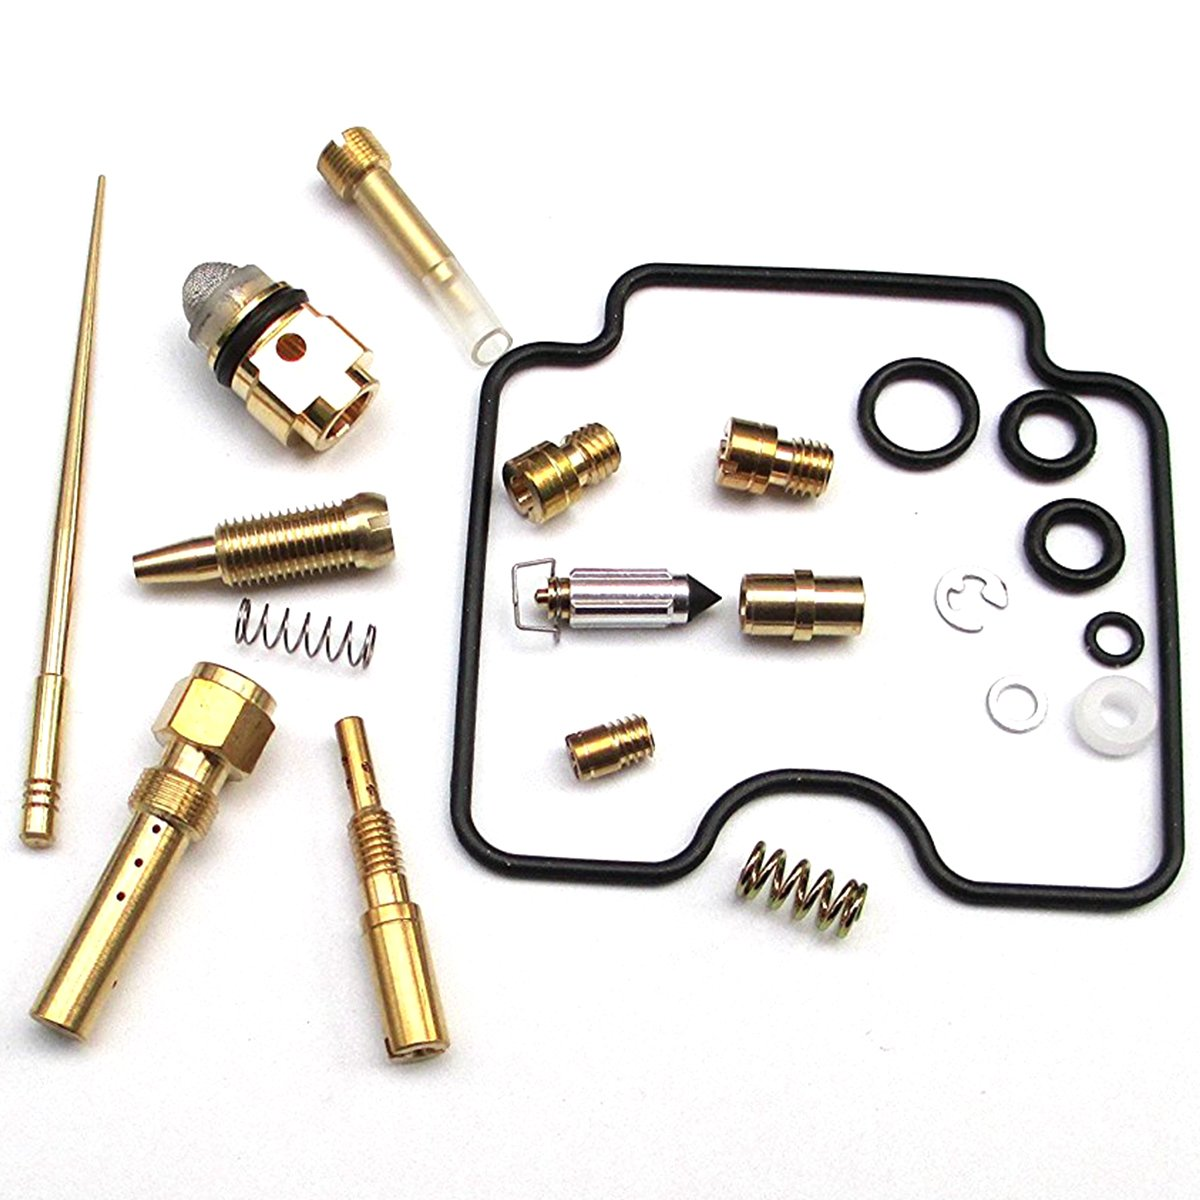 New Carburetor Rebuild Repair Kit for Yamaha Grizzly 660 4x4 YFM660FW 2002 2003 2004 2005 Carb Replacement Assembly by Amhousejoy RUIAN HAOCHENG VEHICLE PARTS